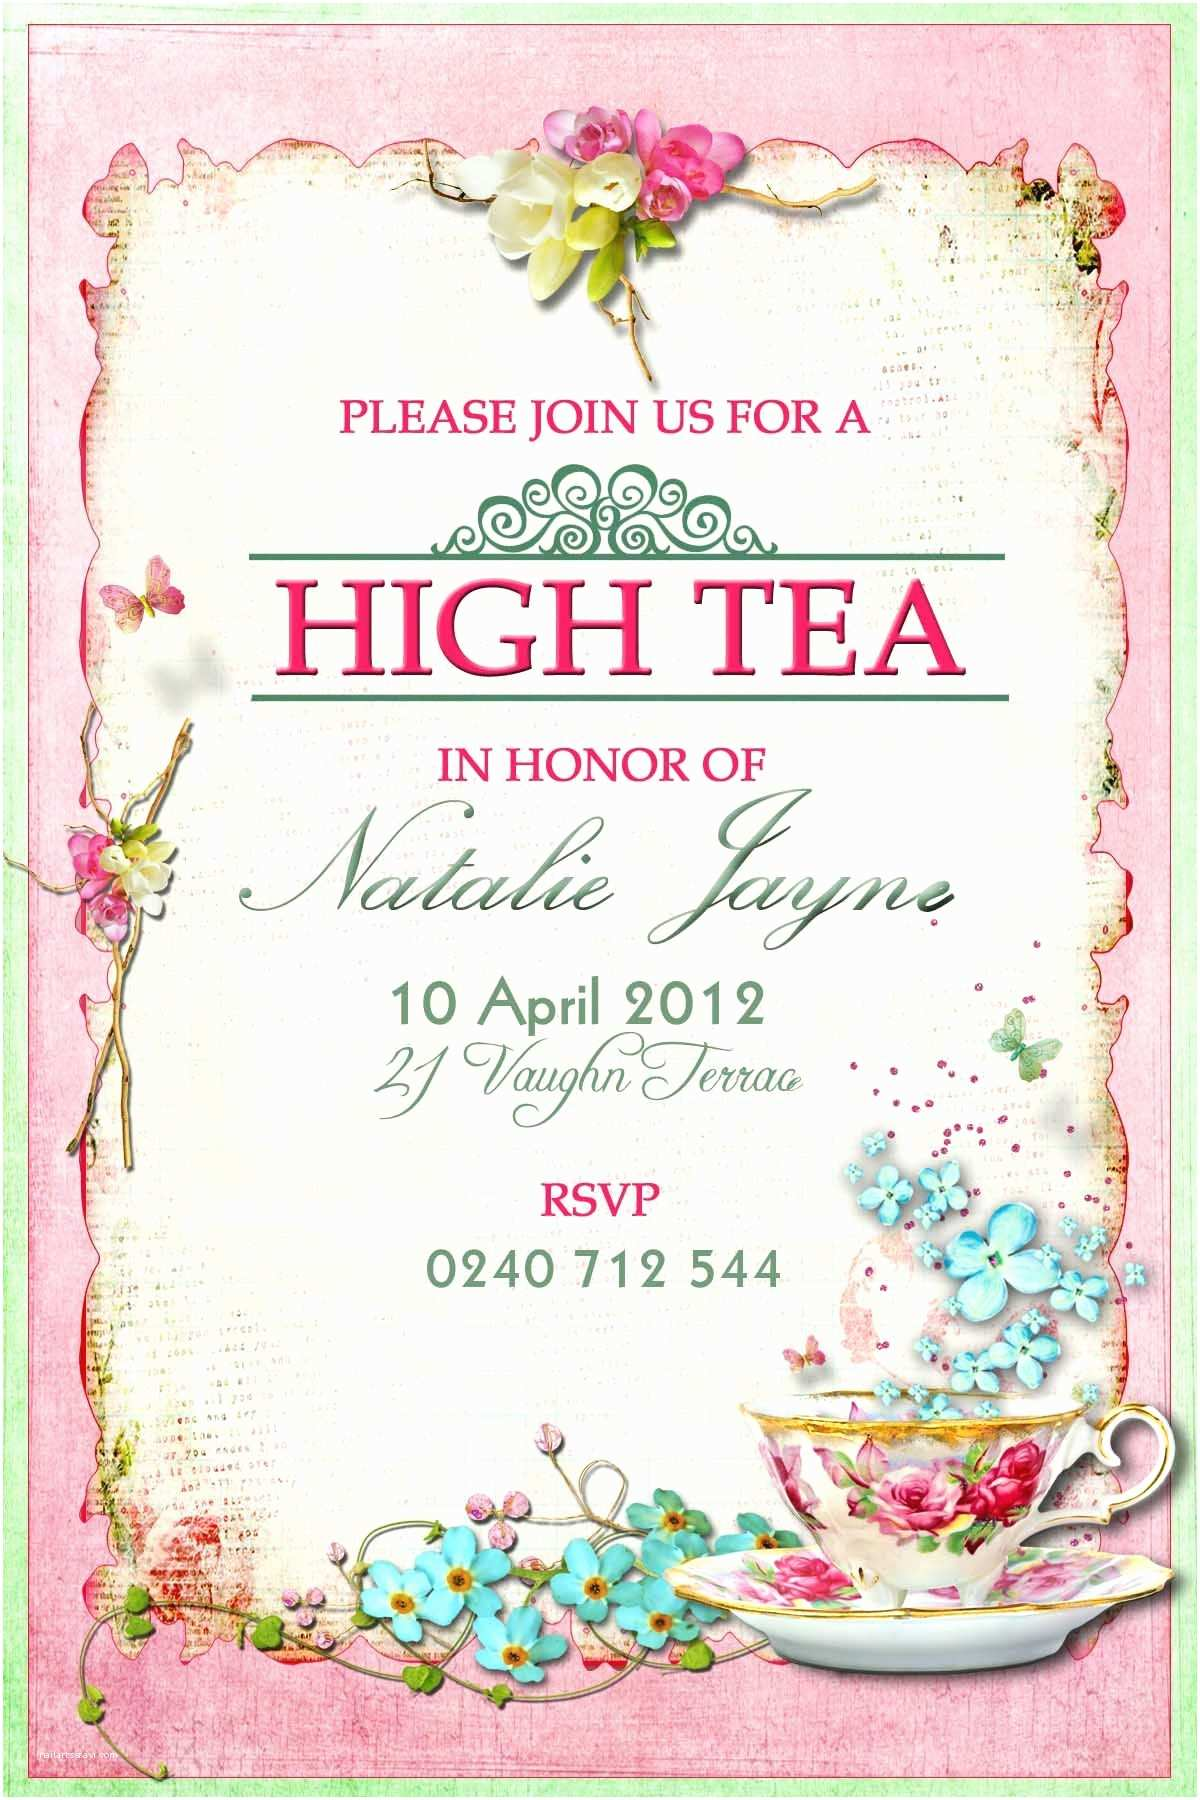 Tea Party Wedding Invitations Victorian High Tea Party Invitations Surprise Party